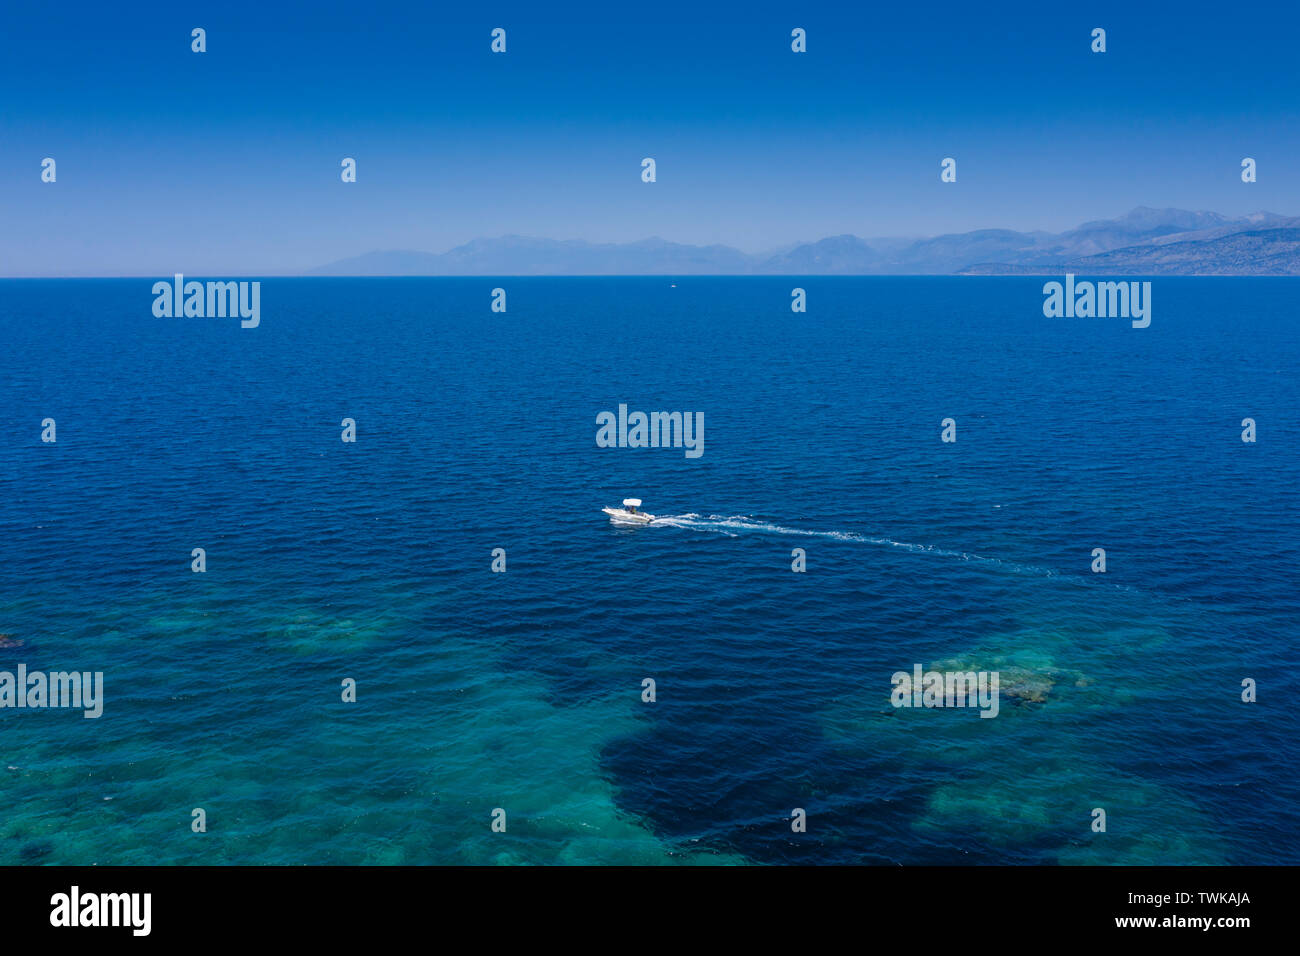 Aerial view of Cassiopi, beautiful deep blue sea with pleasure boat and mountains in the background. - Stock Image